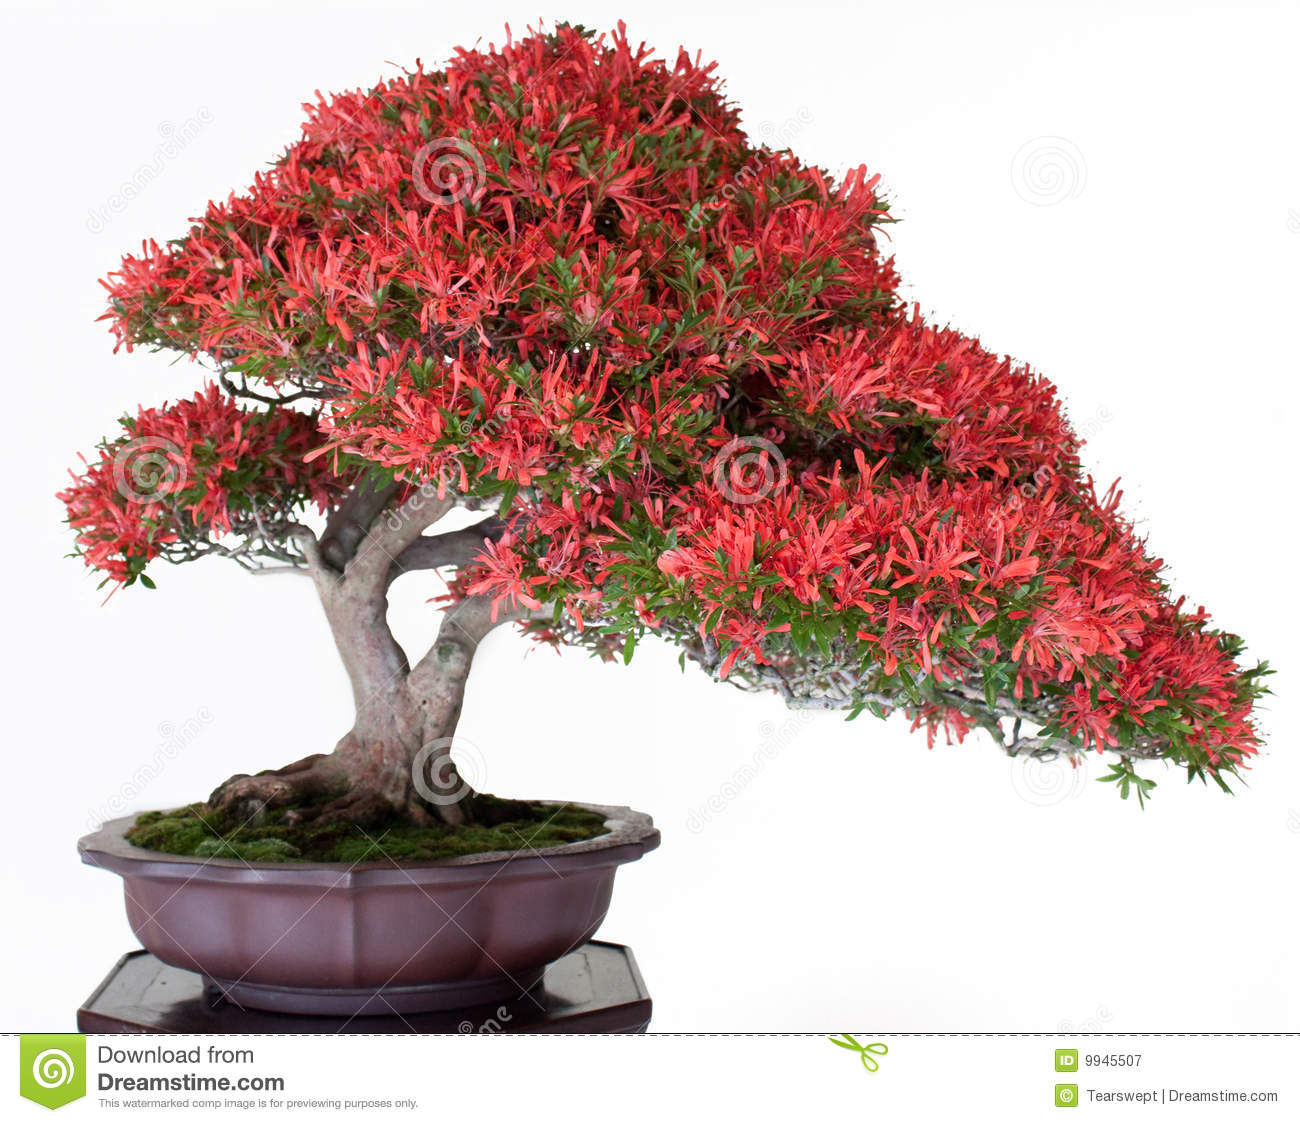 Bonsais japoneses fotograf a de archivo libre de regal as - Plantas para bonsai ...